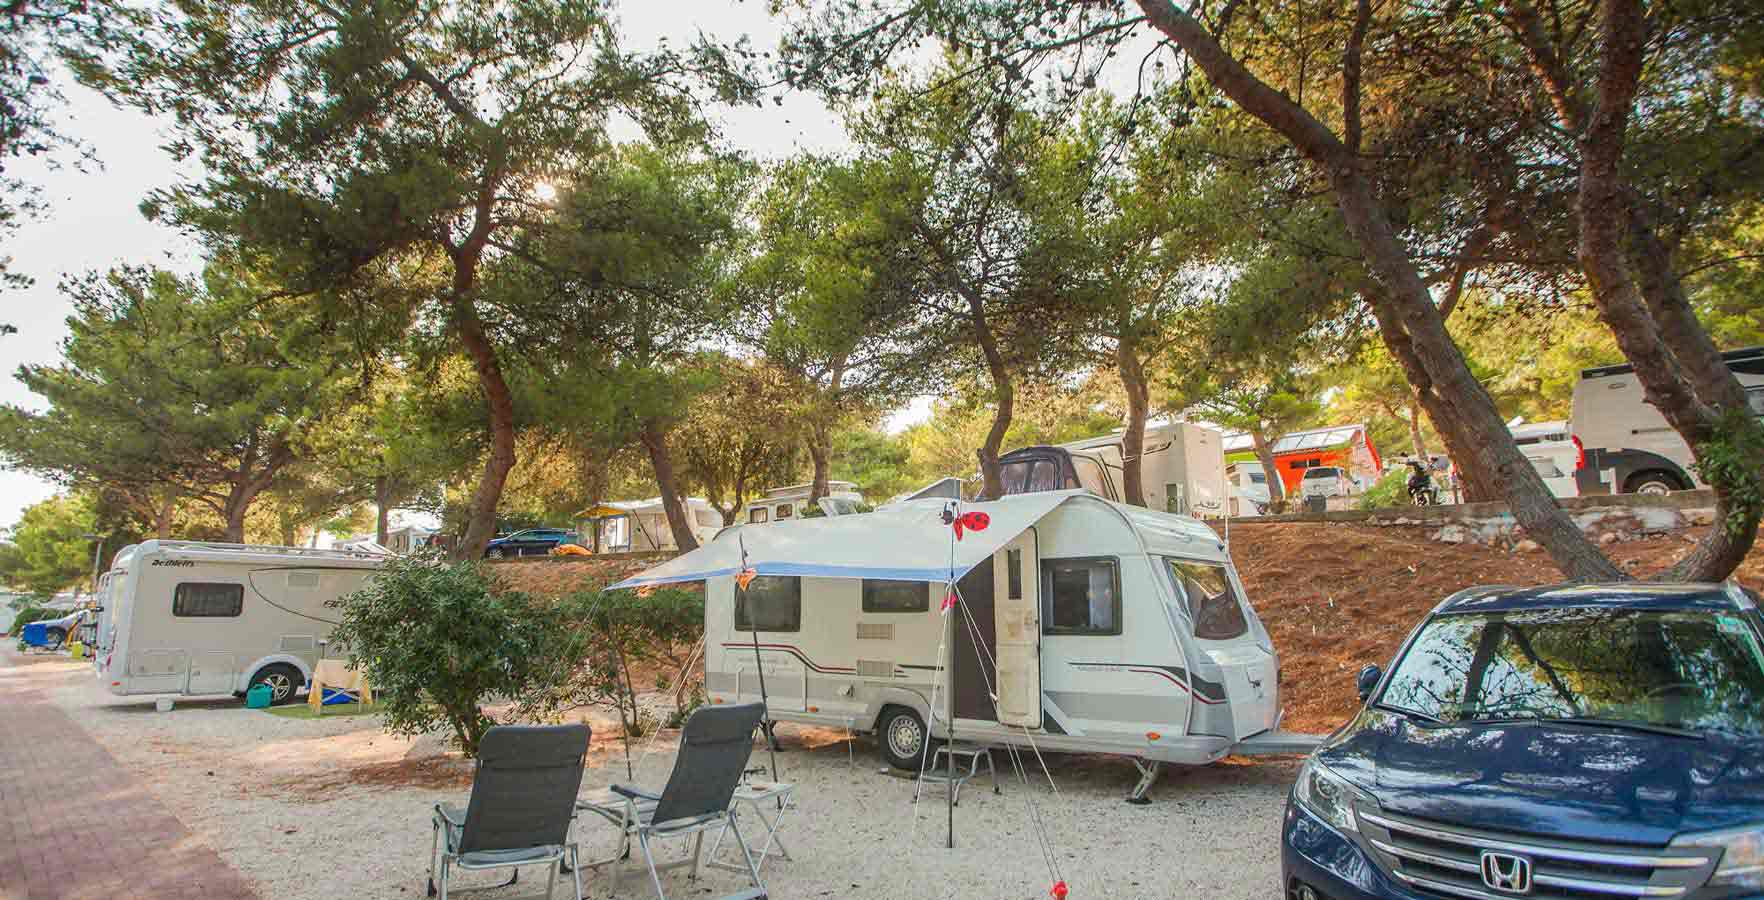 Campsite Belvedere - camping on the sea